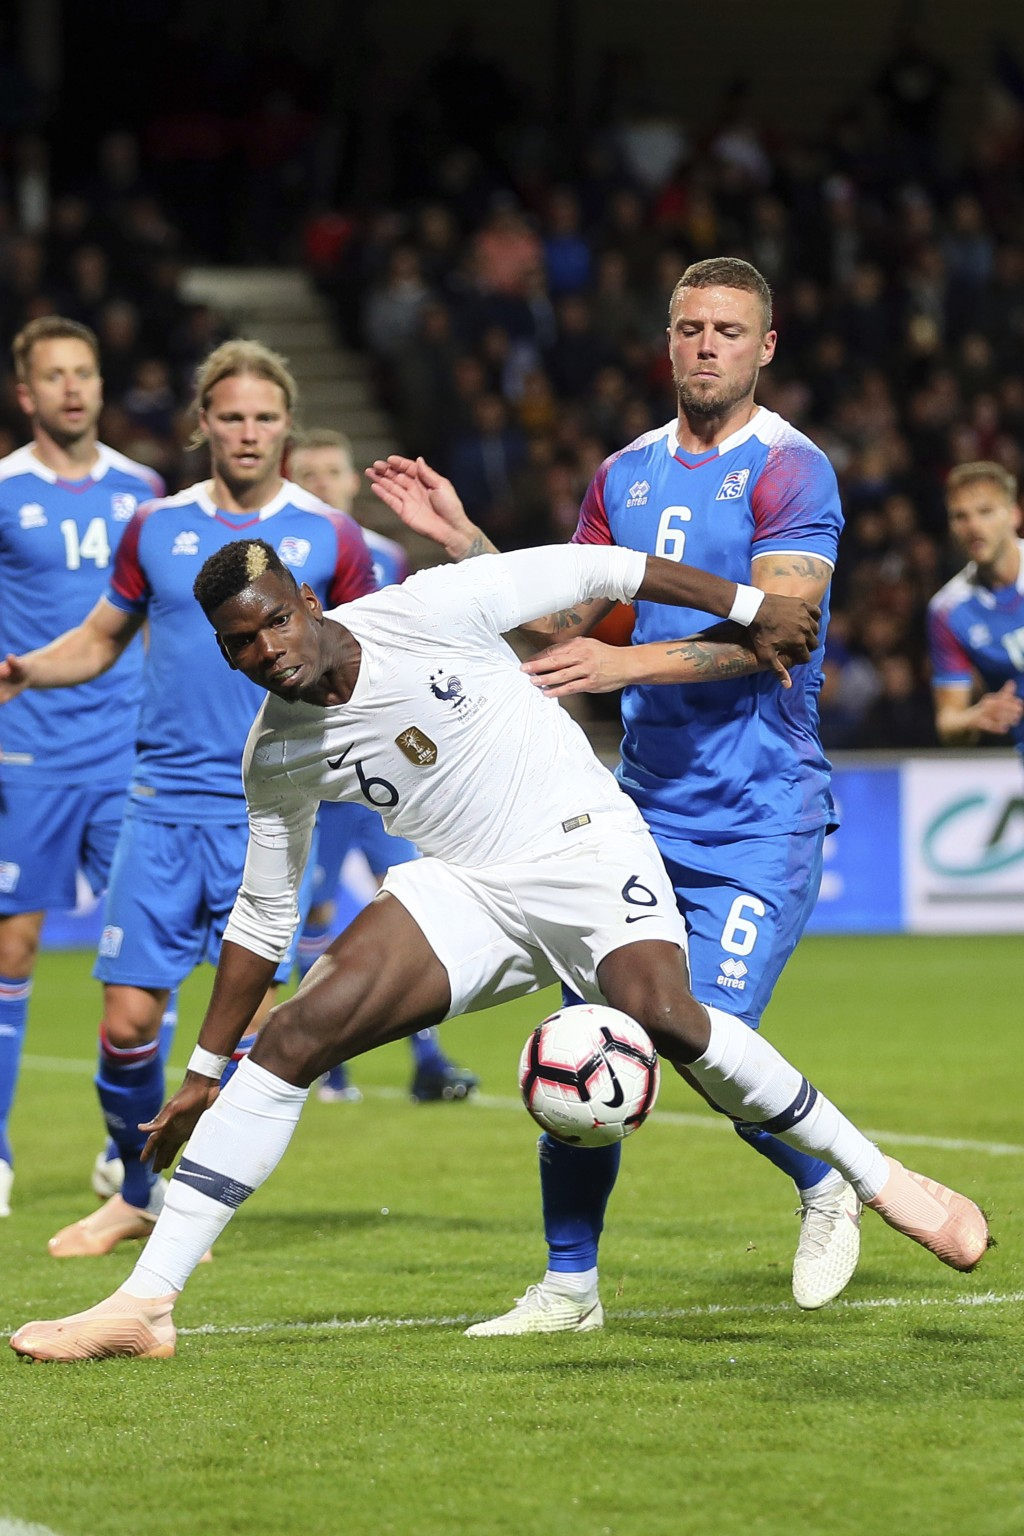 France's Paul Pogba, foreground, challenges for the ball with Iceland's Ragnar Sigurdsson, during a friendly soccer match between France and Iceland,